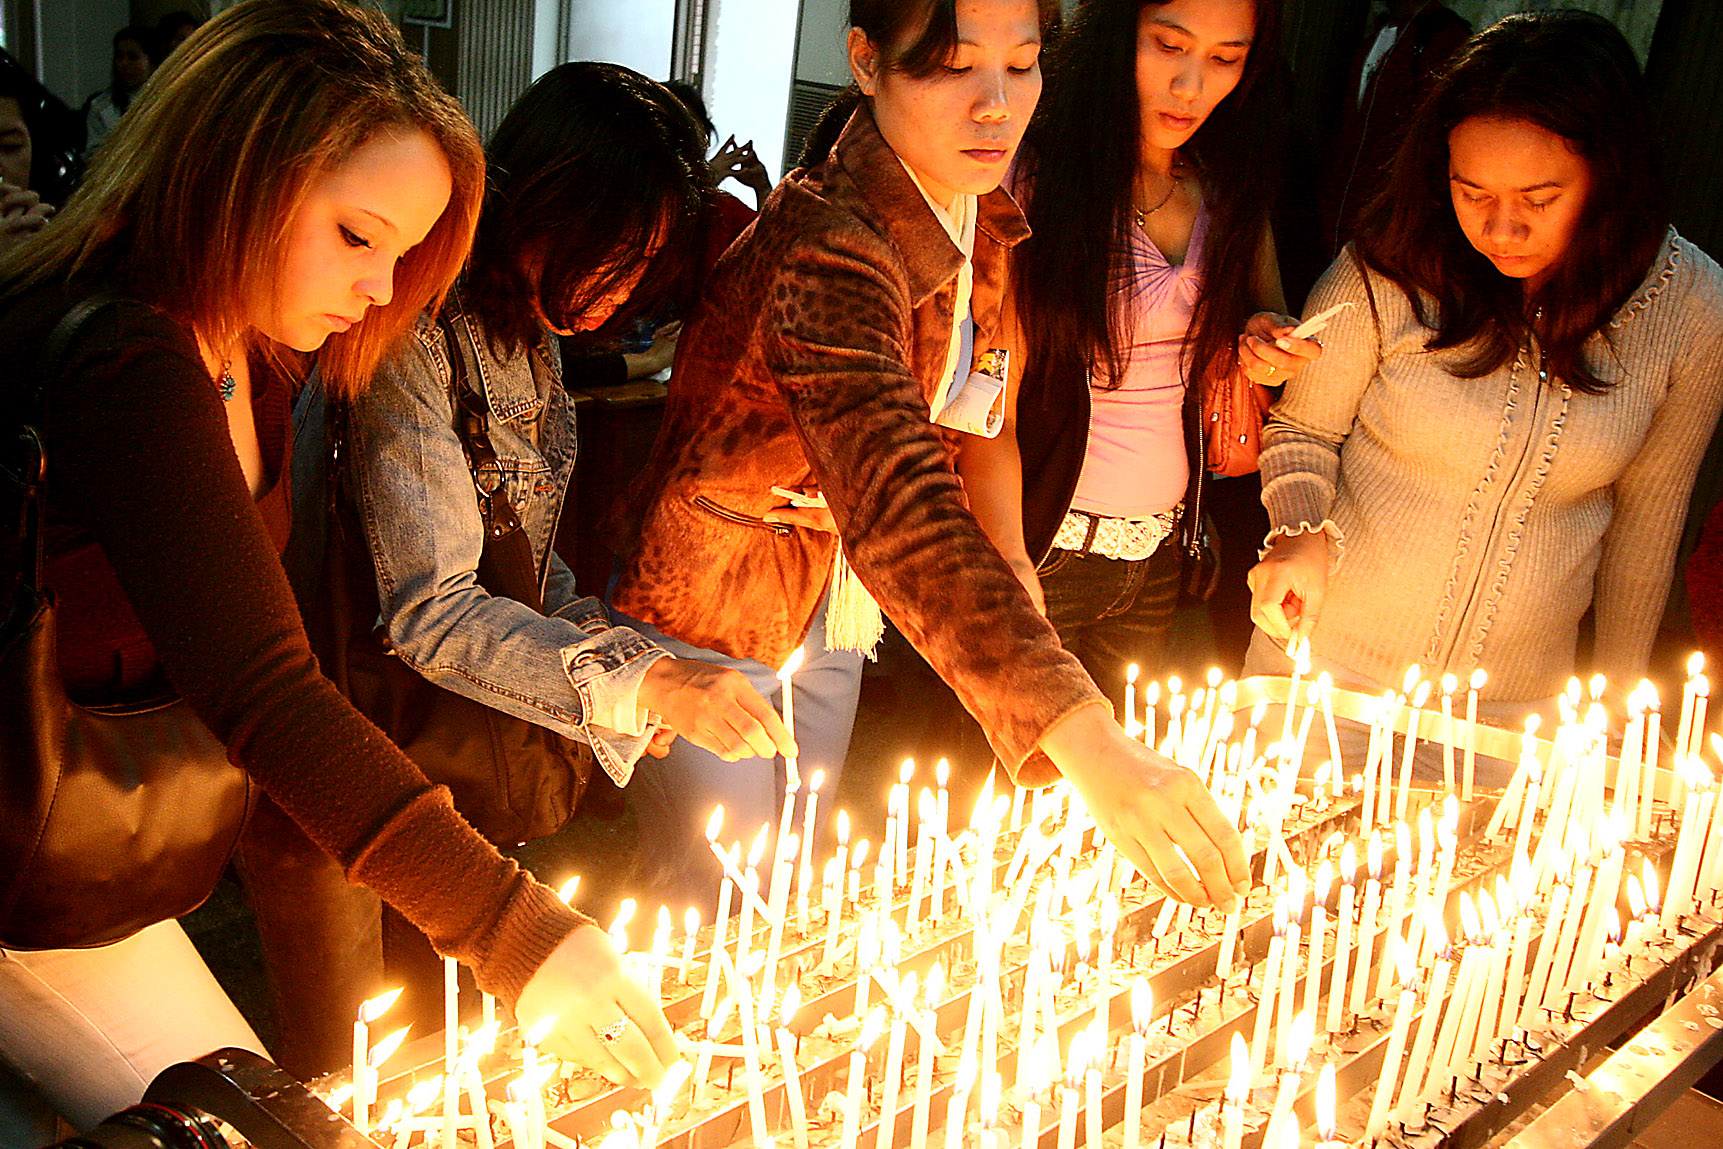 Worshippers put on candles at the St. Christopher's Church, December 24, 2006.